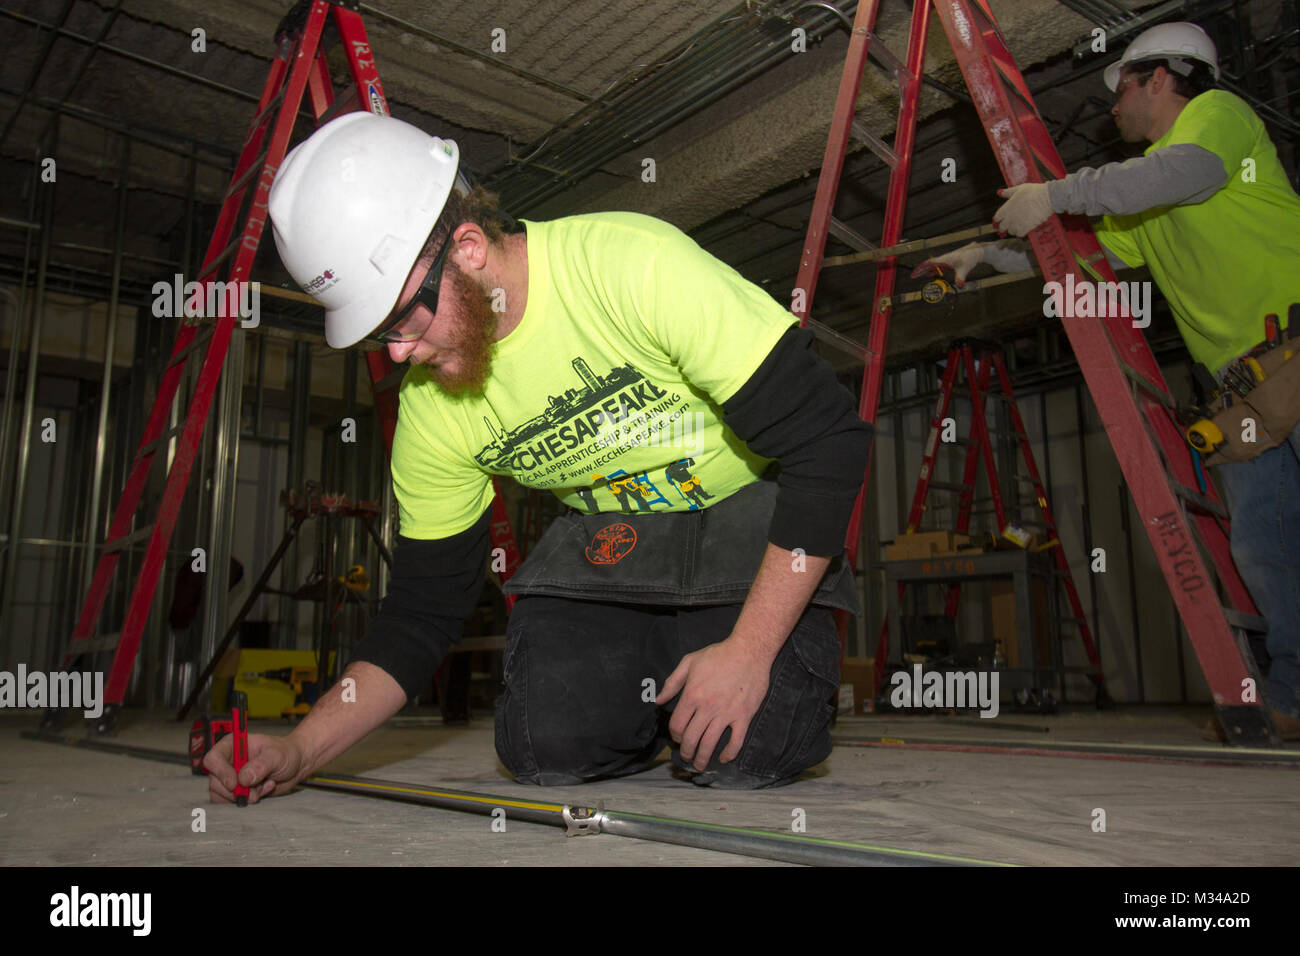 Chris Jameson An Electrical Apprentice Measures And Bends Conduit With How To Bend Together As Part Of The Renovations Arlington National Cemeterys Welcome Center